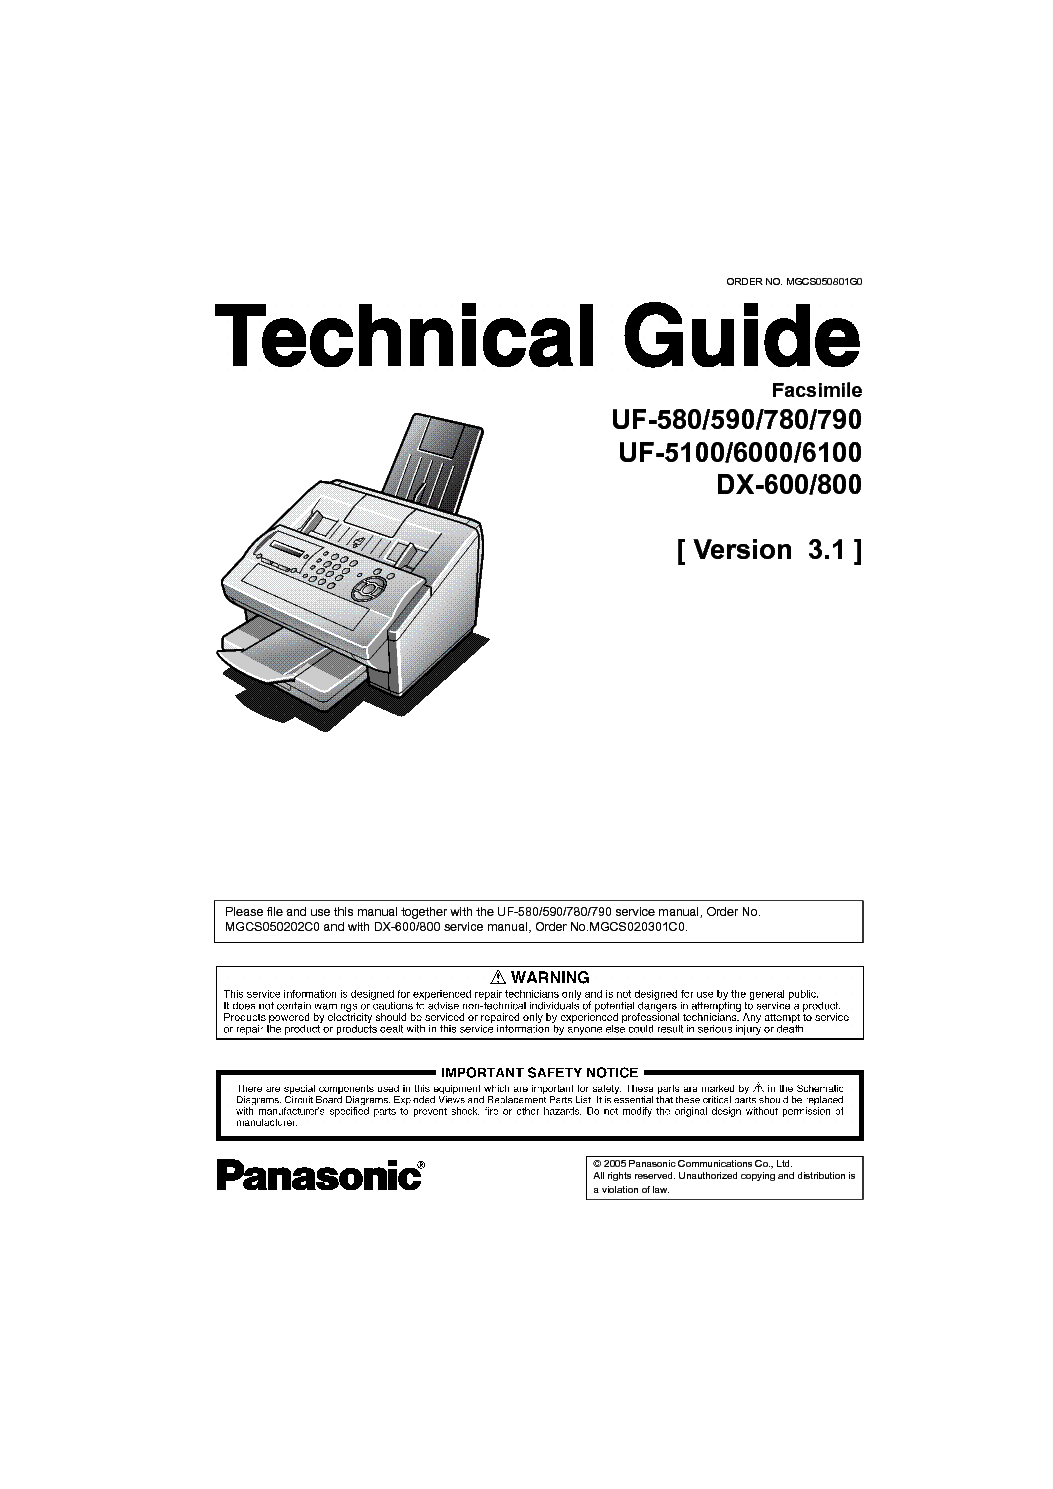 PANASONIC UF5100 6000 6100 VER3.1 service manual (1st page)